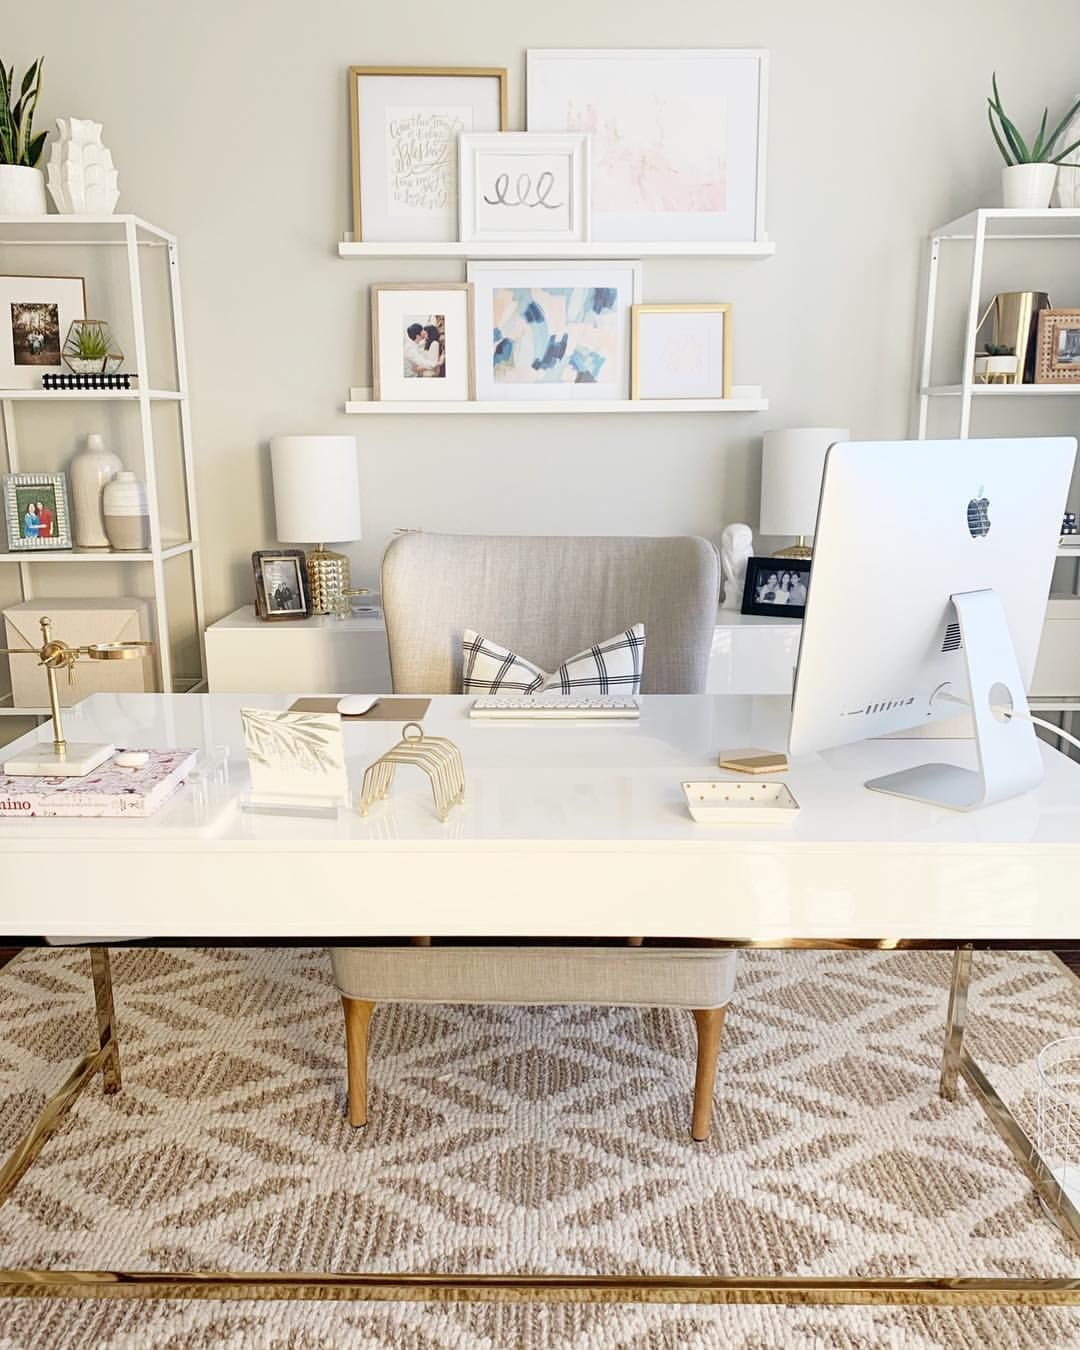 20 Home Office Ideas Modern Style And Comfortable In 2020 Cozy Home Office Home Office Design Home Office Space